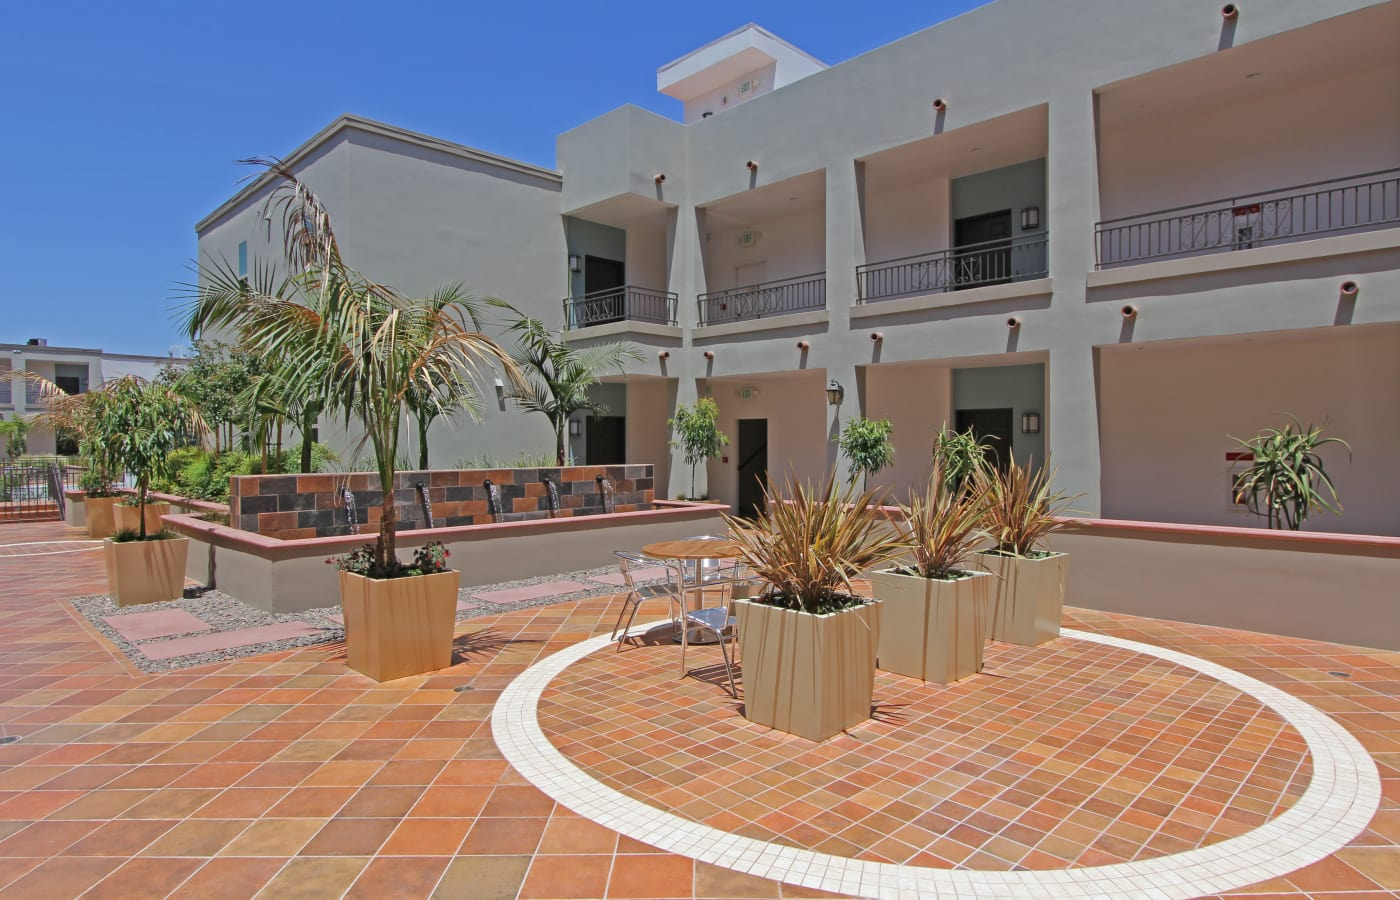 Resident patio with fountains at IMT Magnolia in Sherman Oaks, CA